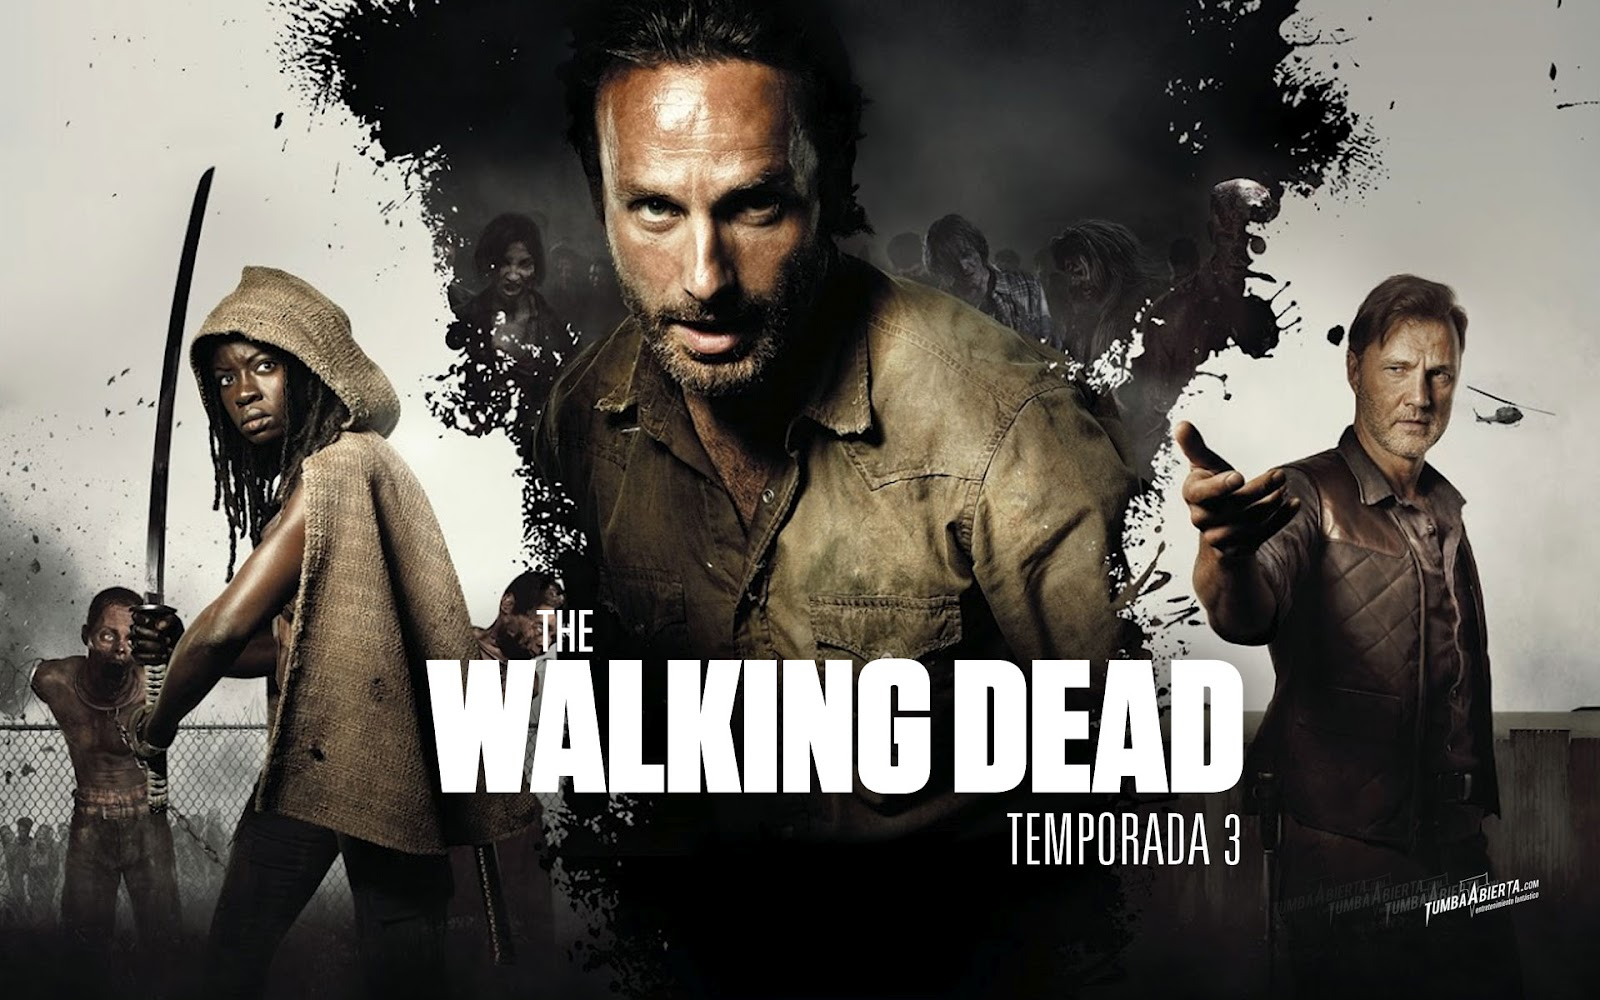 THE WALKING DEAD TERCERA TEMPORADA | Todos los Capitulos ONLINE